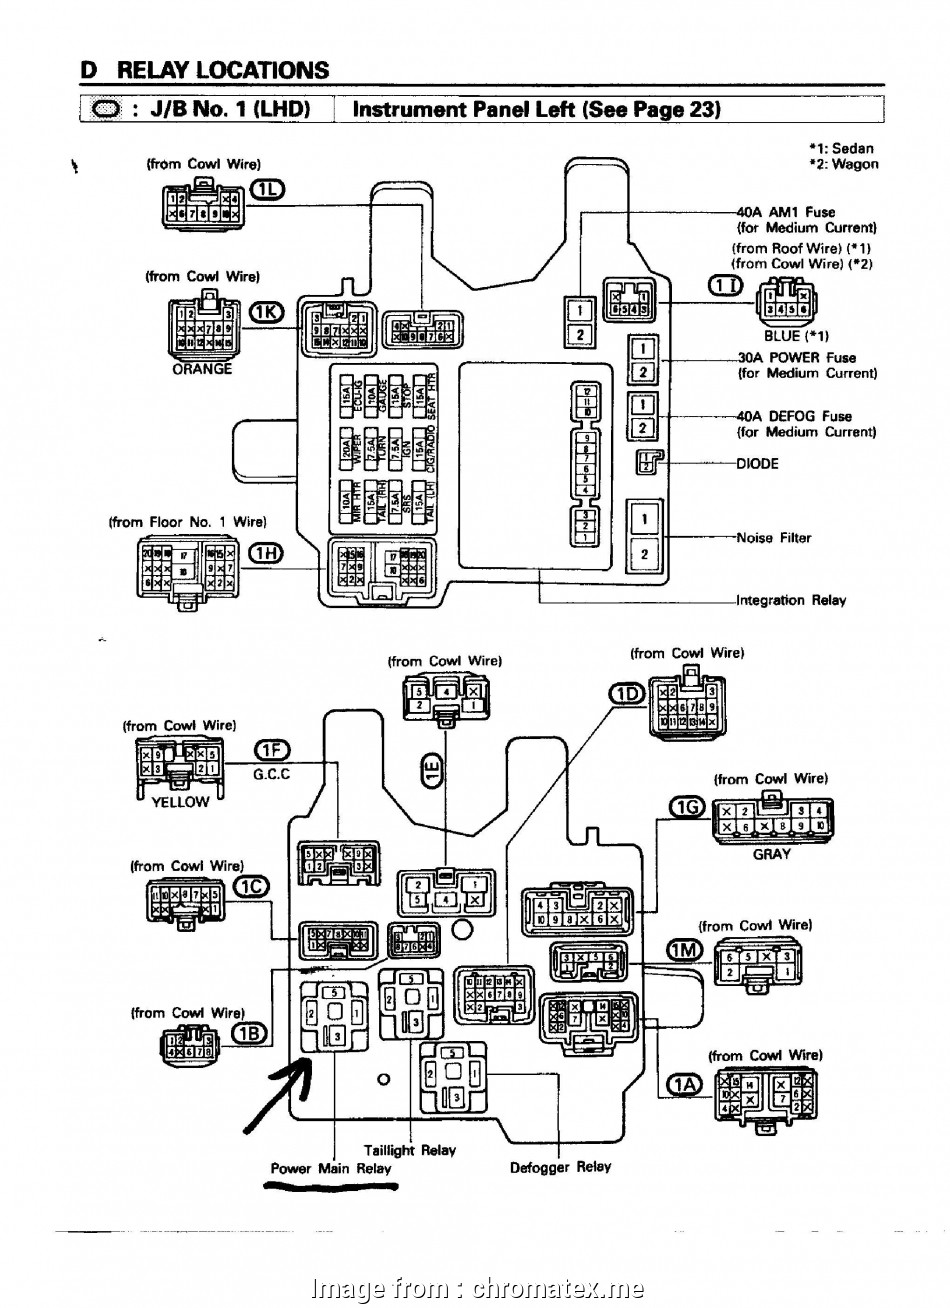 Rav4 Electrical Wiring Diagram Cleaver 2007 Camry